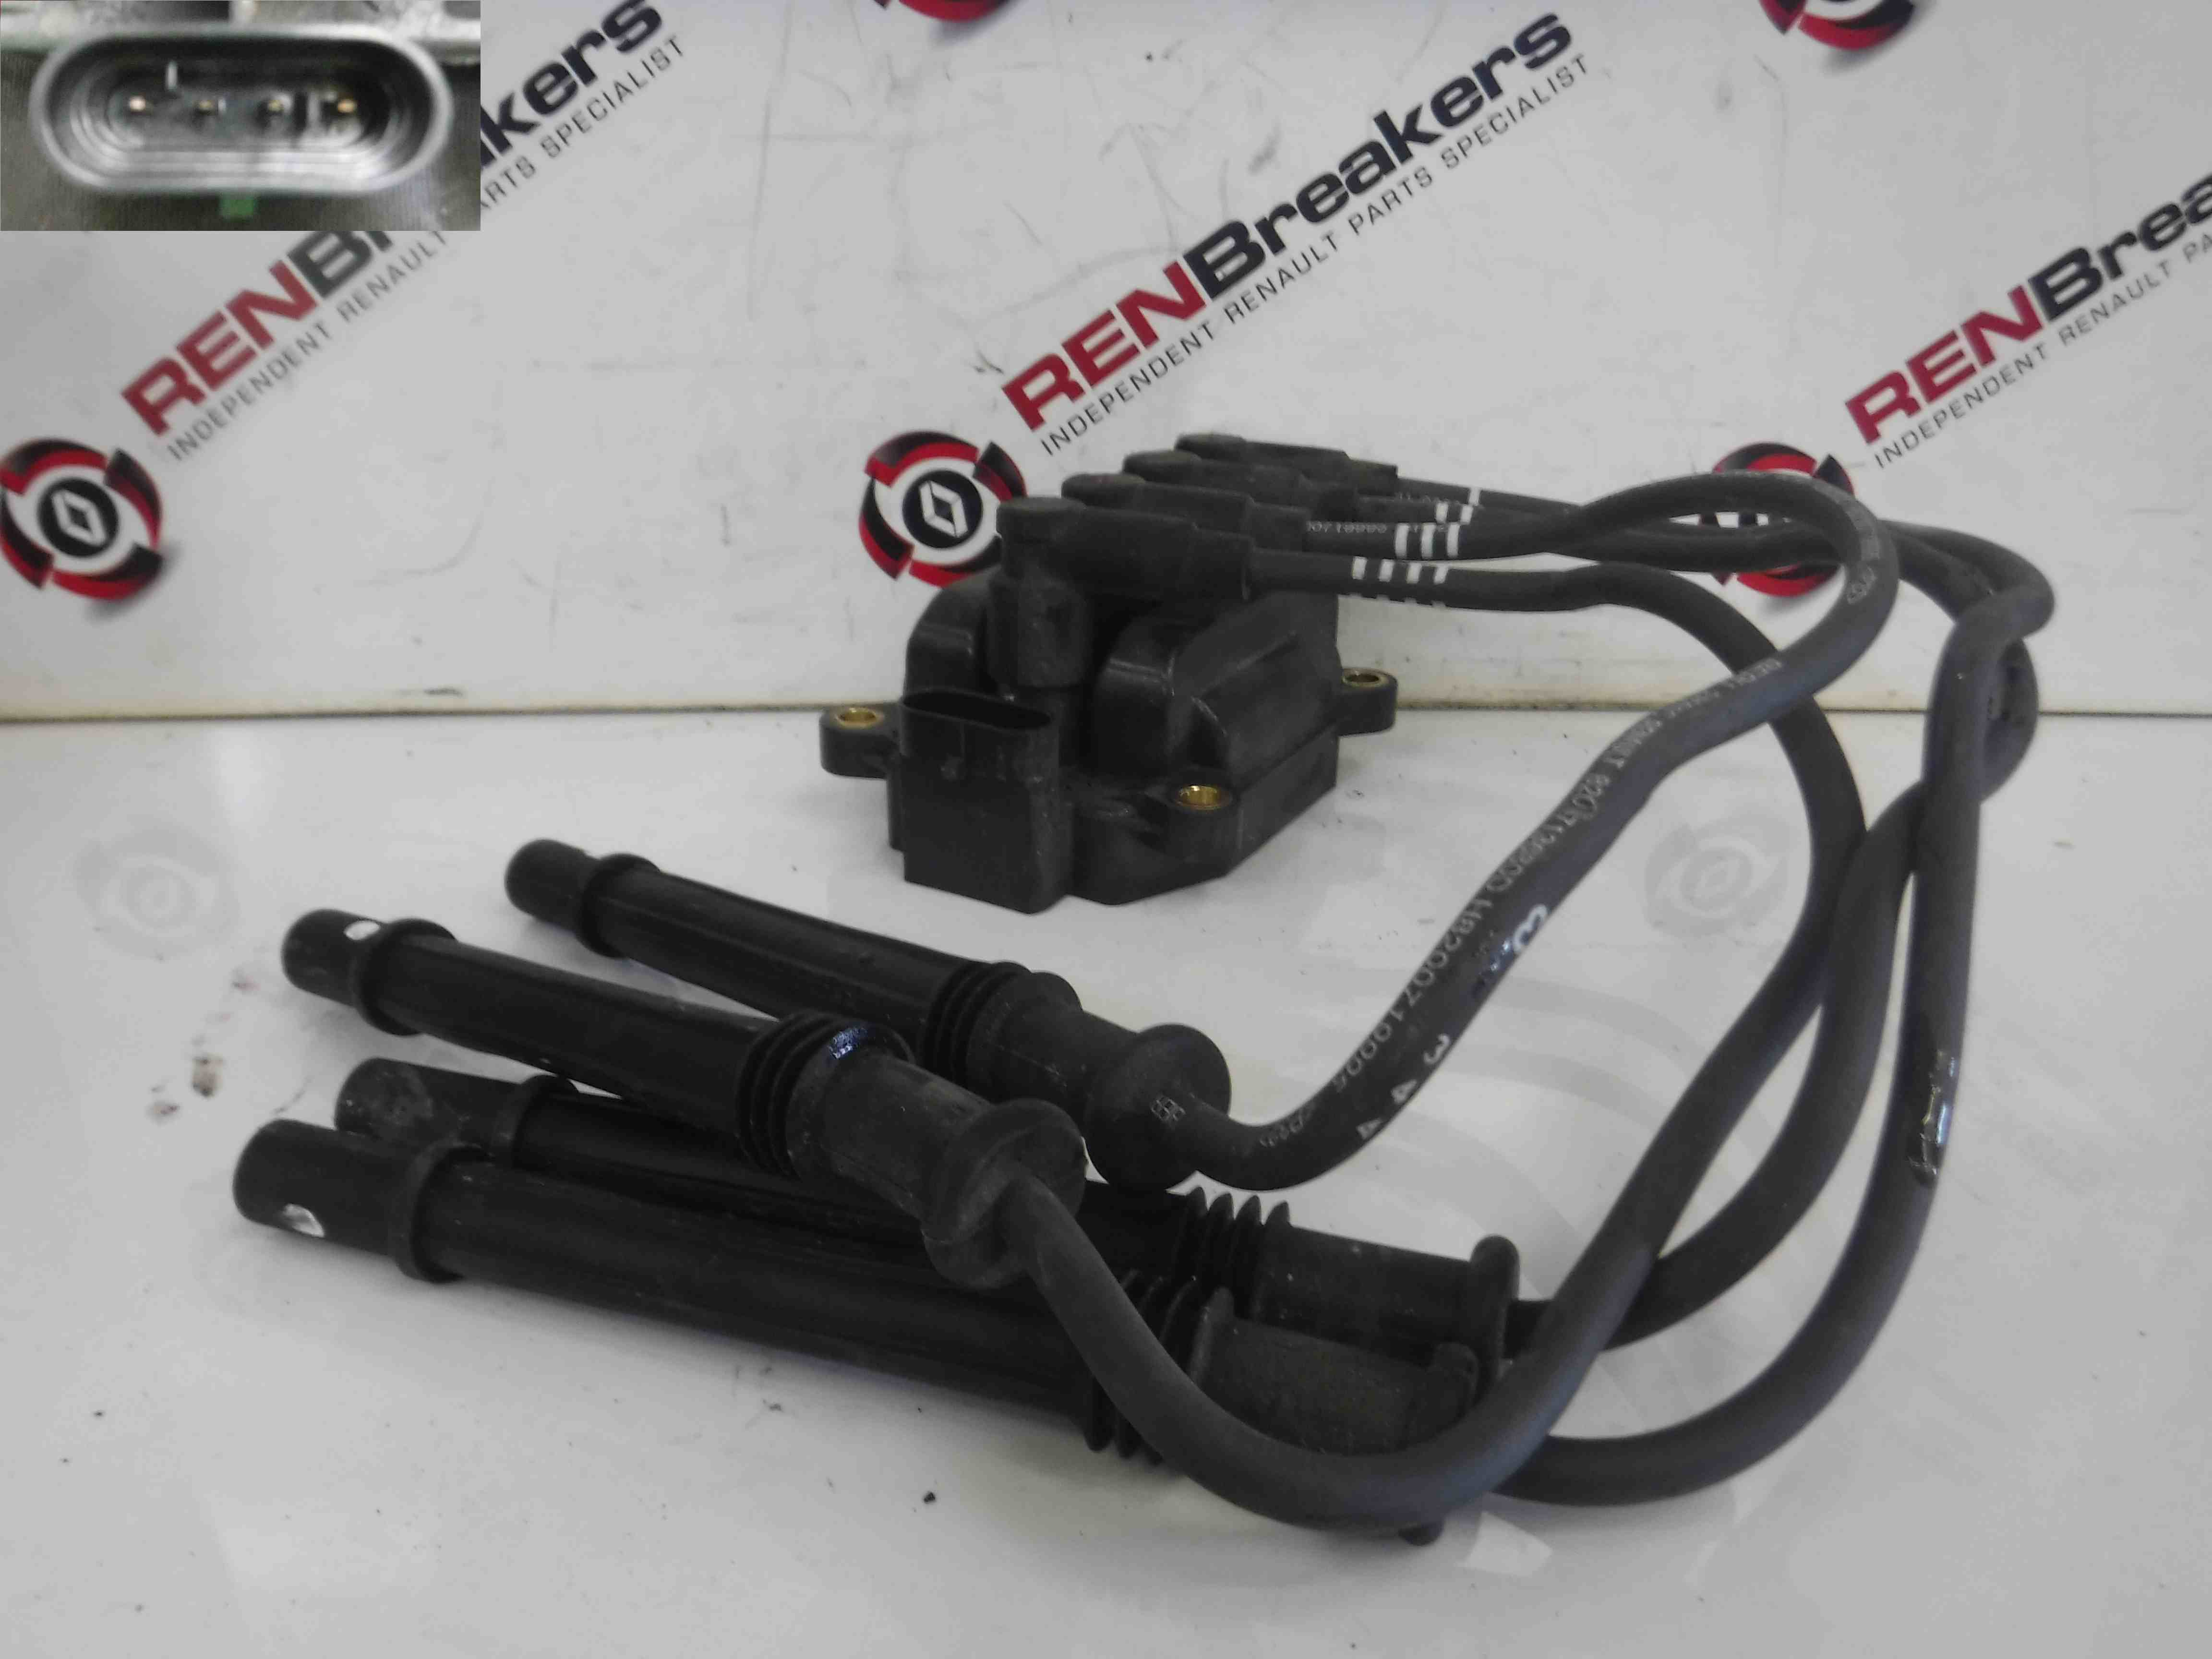 Renault Clio MK4 2013-2017 1.2 16v Ignition Coil Pack  Leads 8200702693